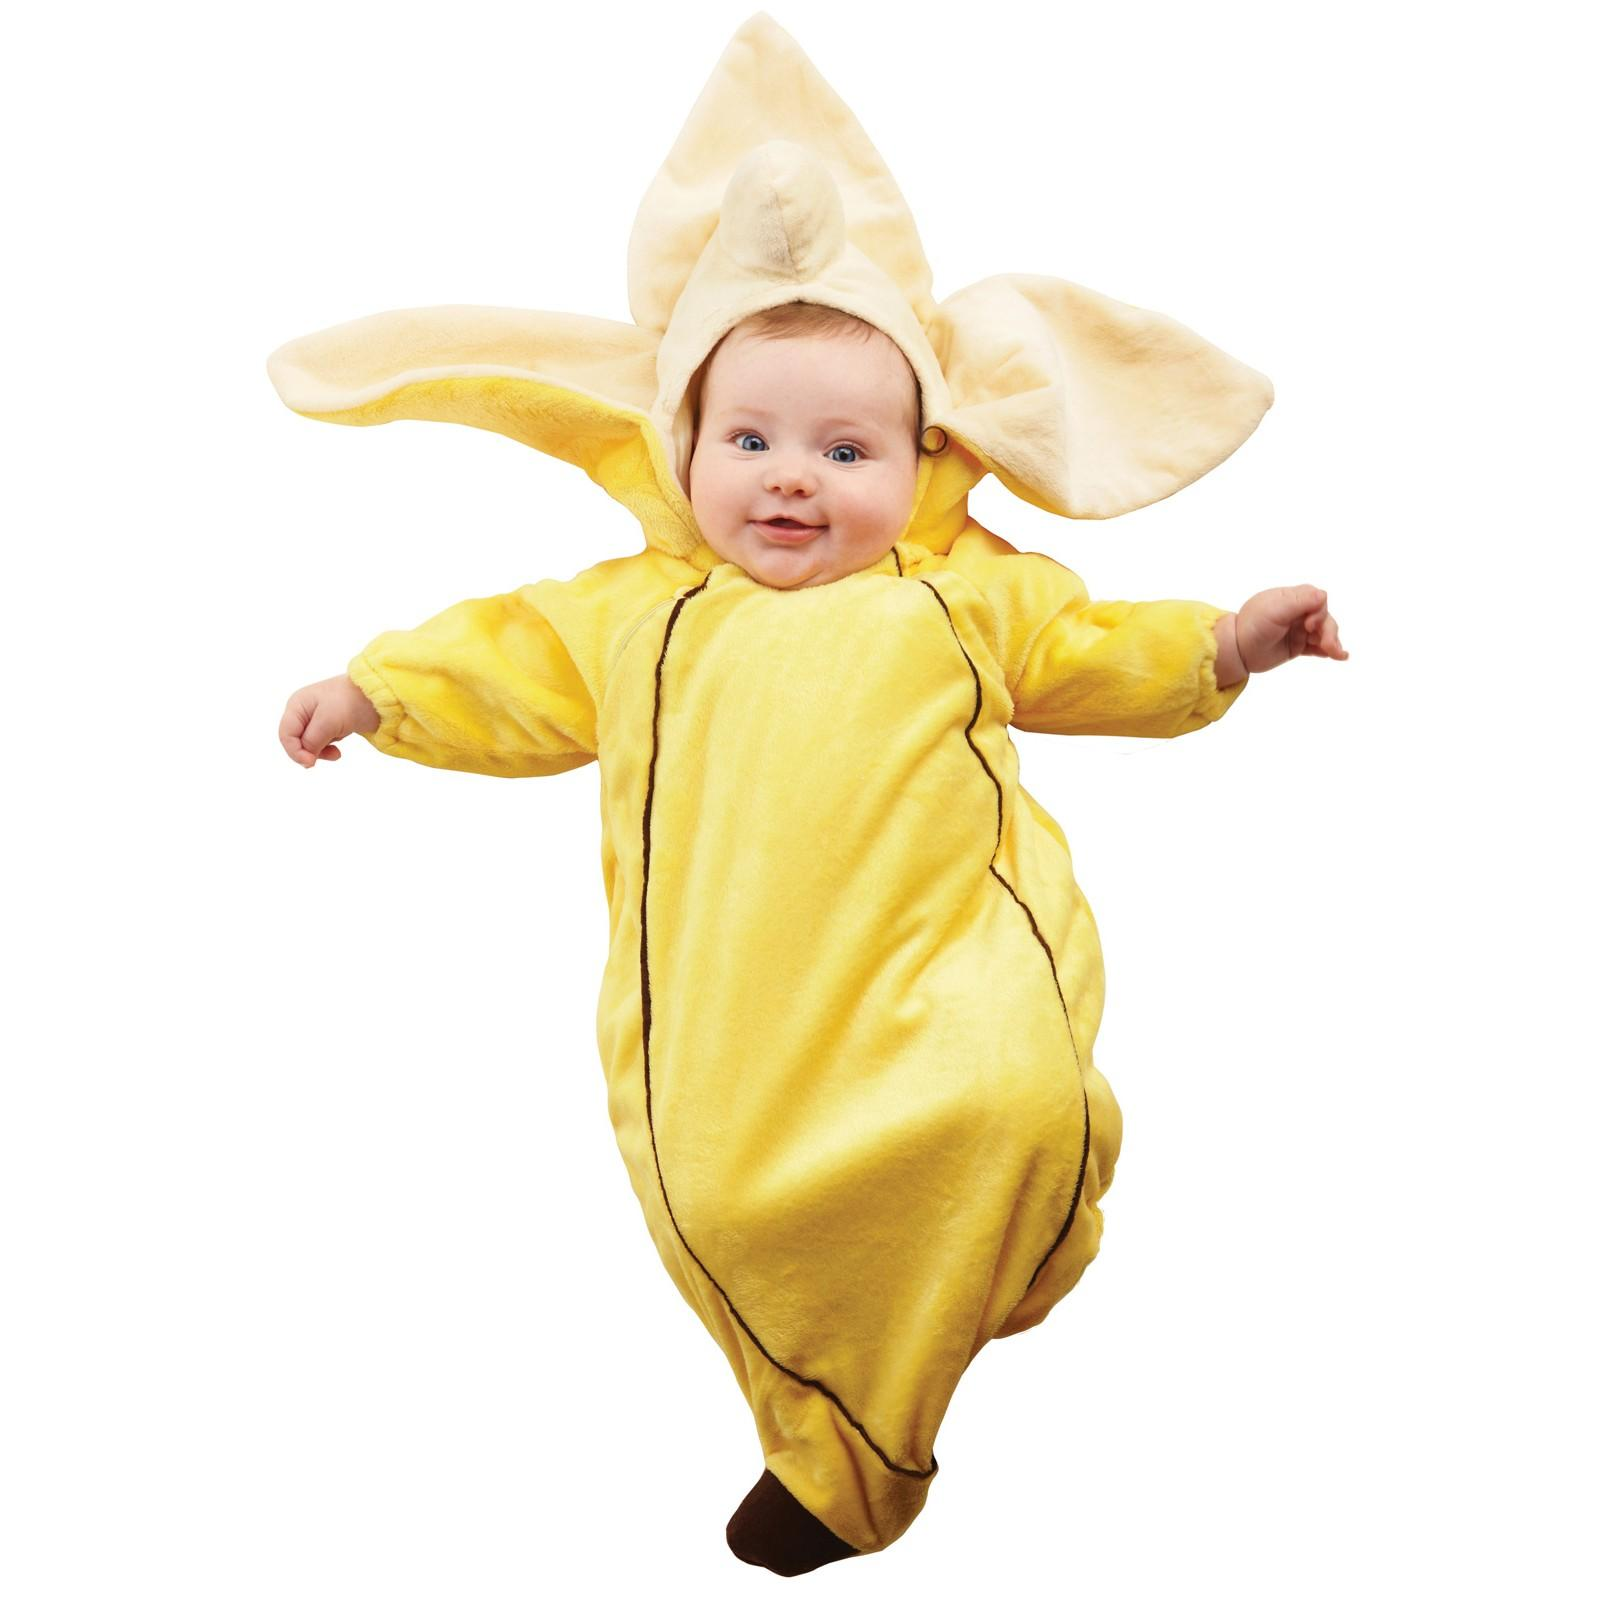 banana-bunting-infant-costume-bc-804312